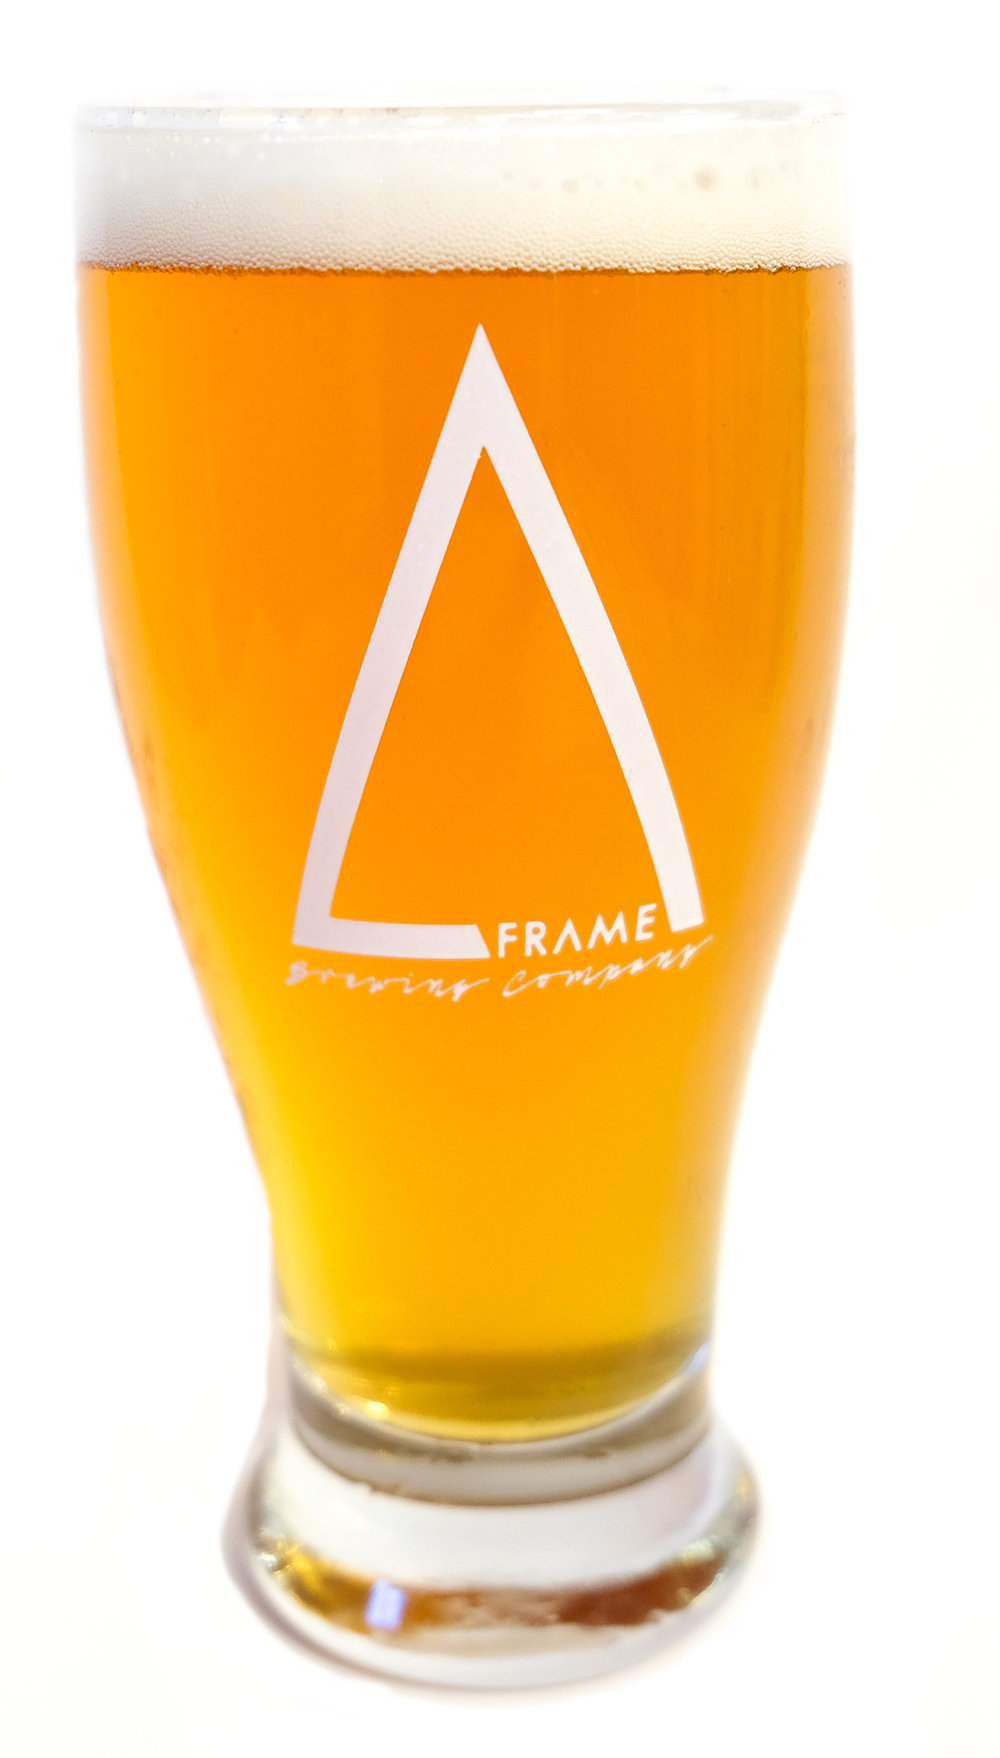 The Beer — A-FRAME Brewing Co.